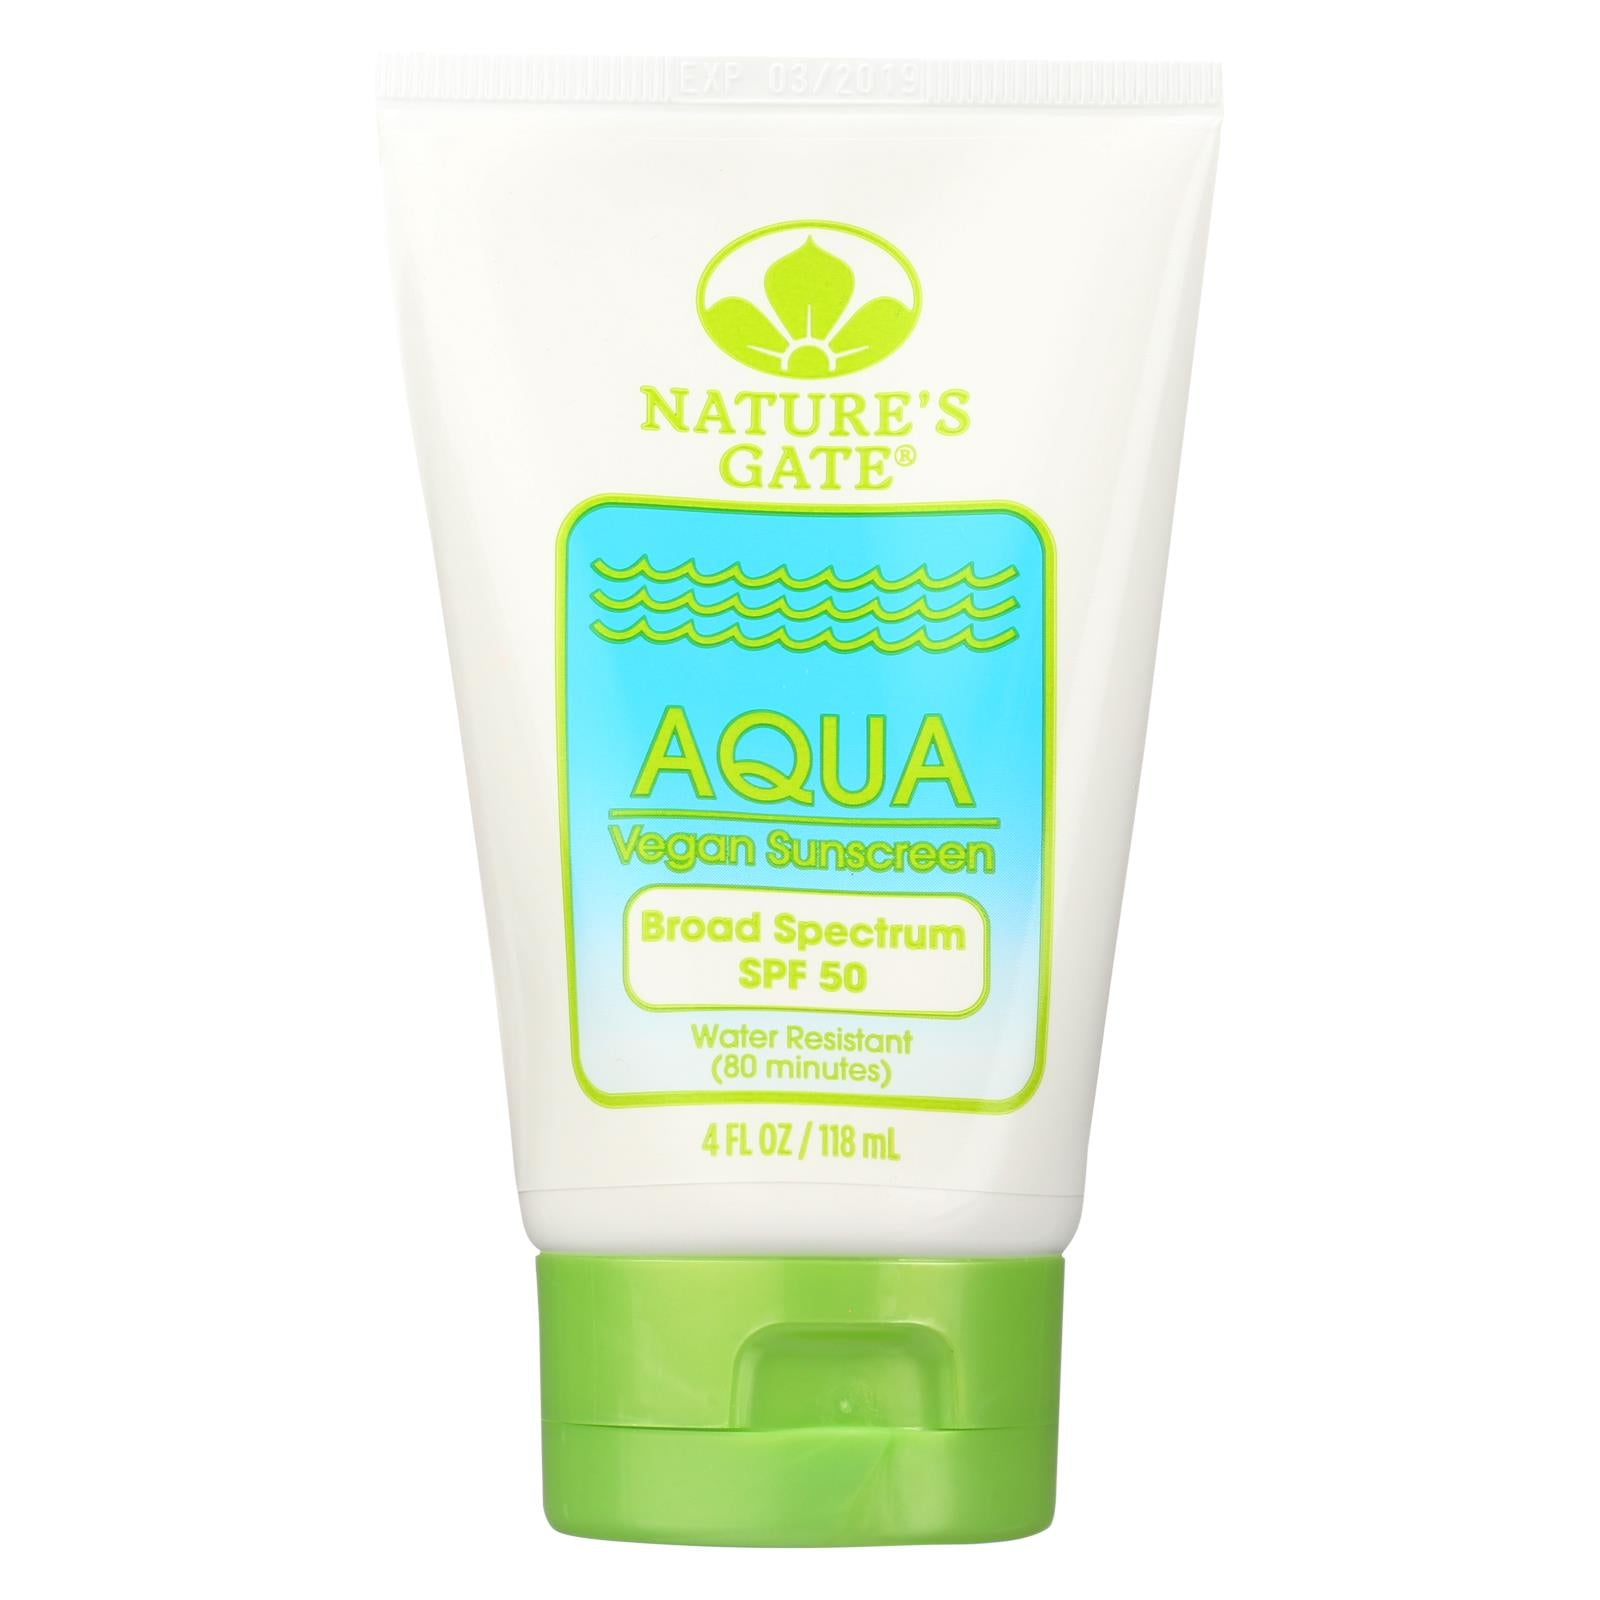 Buy Nature's Gate Aqua Block Sunscreen SPF 50 Fragrance Free - 4 fl oz - Sun Care from Veroeco.com